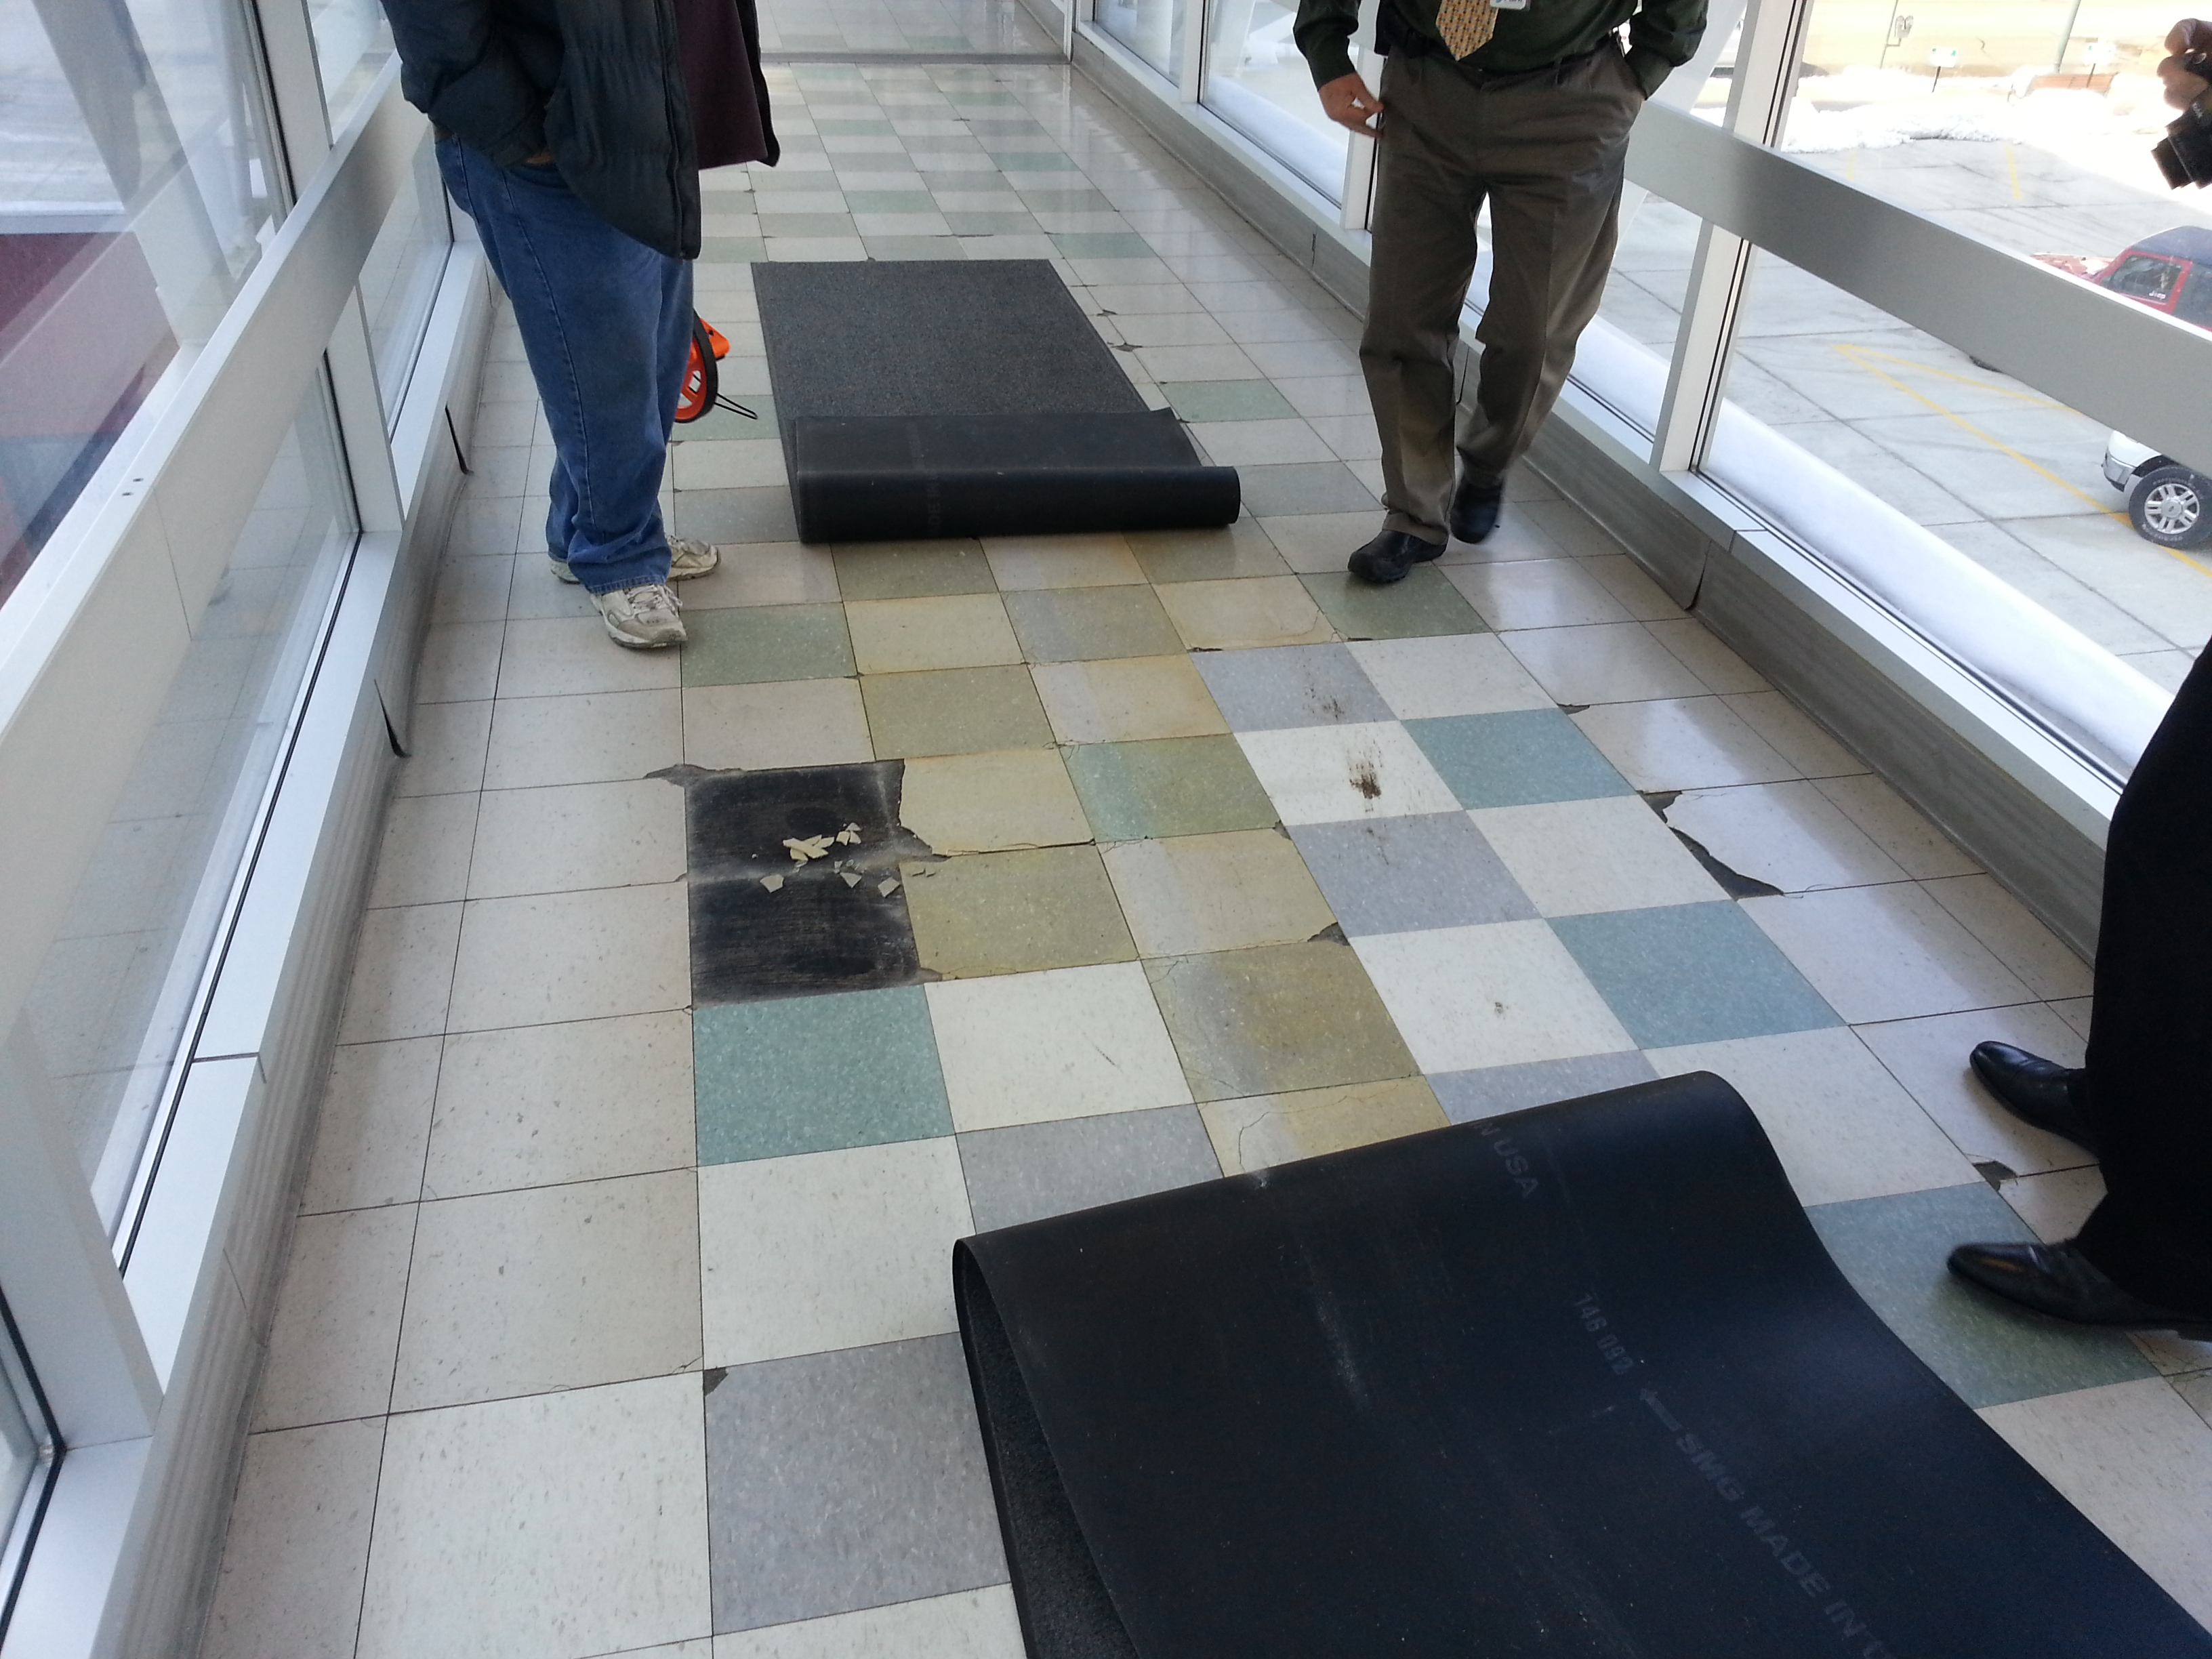 Vinyl Composition Tile: VCT tile removal needed on floor in Cedar Rapids, Iowa